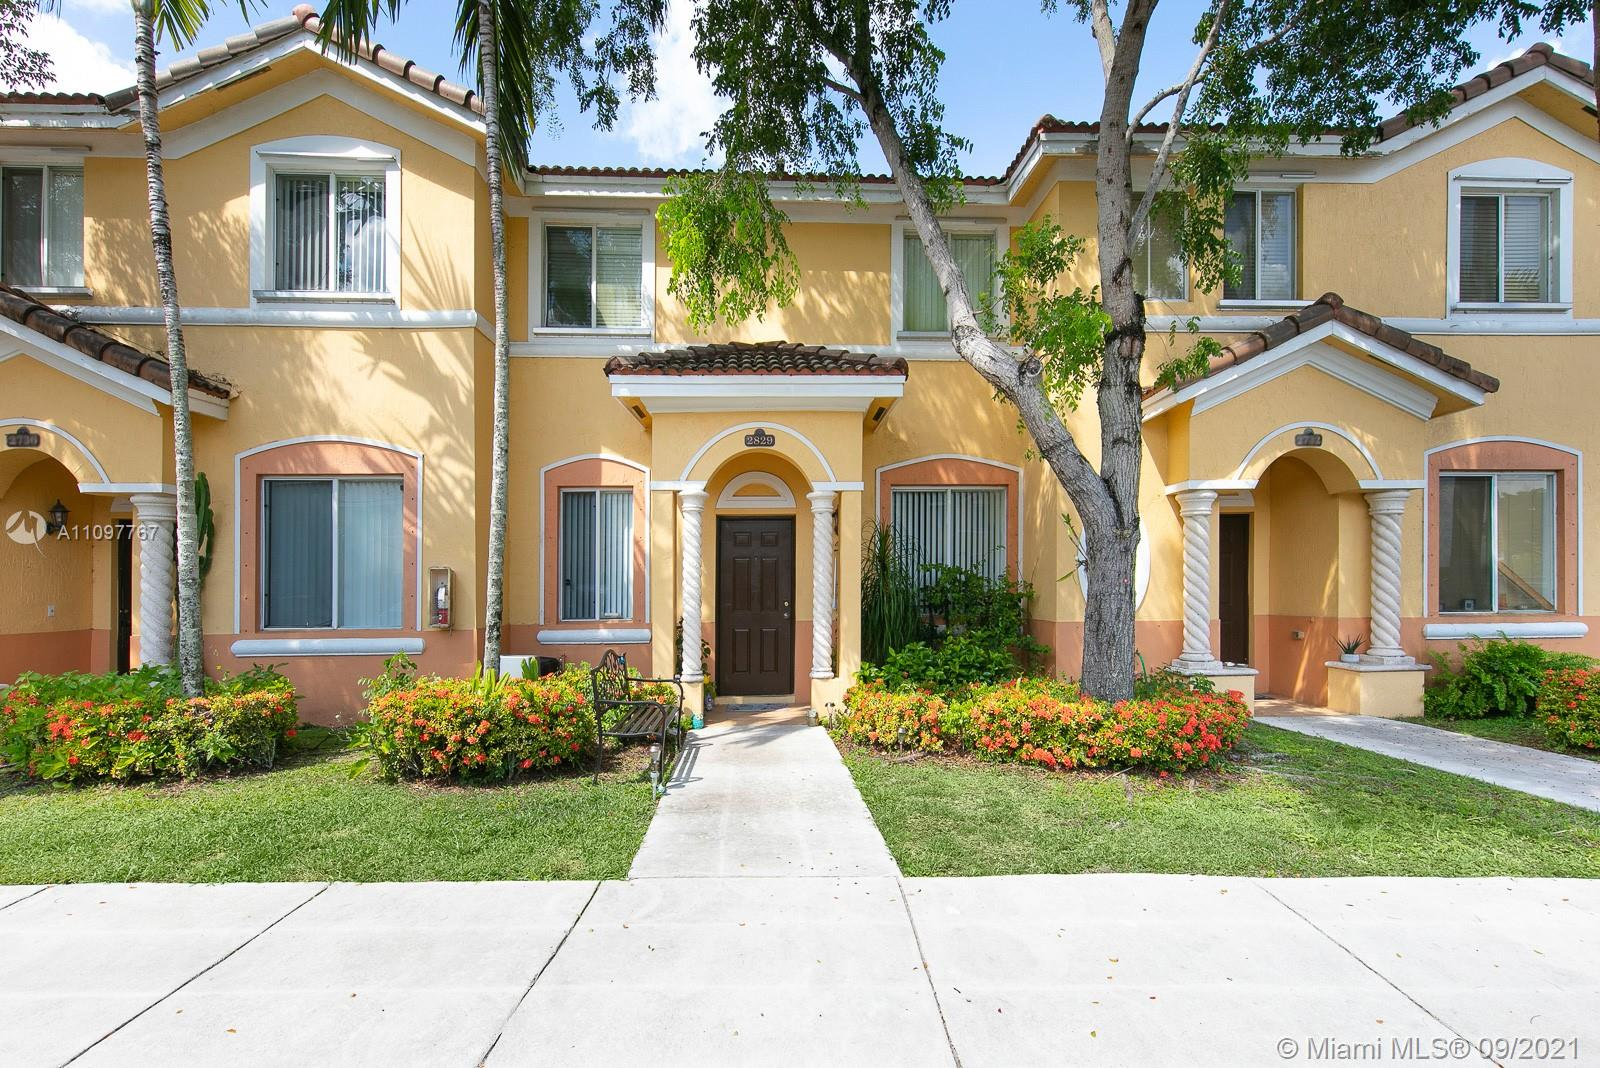 Beautiful 3 bedroom 3 bath lakeside townhome in the heart of Homestead. Gated community with 24 hour security. 2 pools, 2 lakes and 2 parking spaces. Located footsteps from shopping and biking. Homestead is thriving and this is your opportunity to enjoy all that it has to offer.